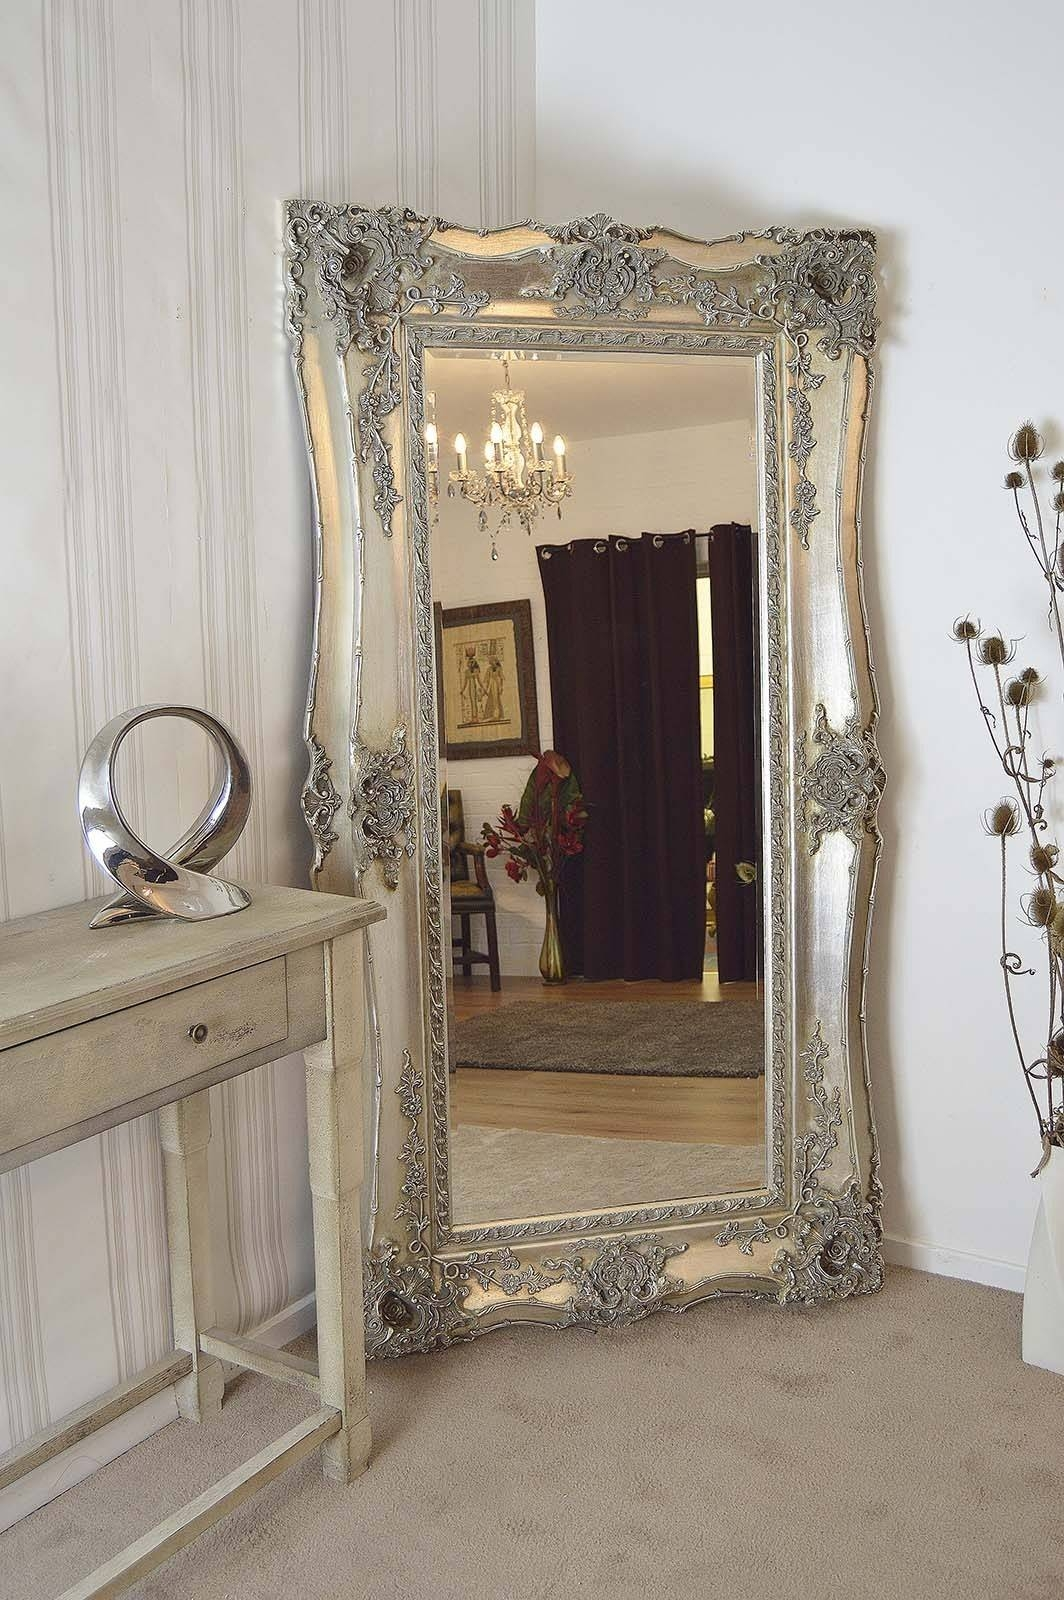 Large Antique Wall Mirror Ornate Frame Antique Ornate Wall Mirrors In Large Vintage Mirrors (View 10 of 25)